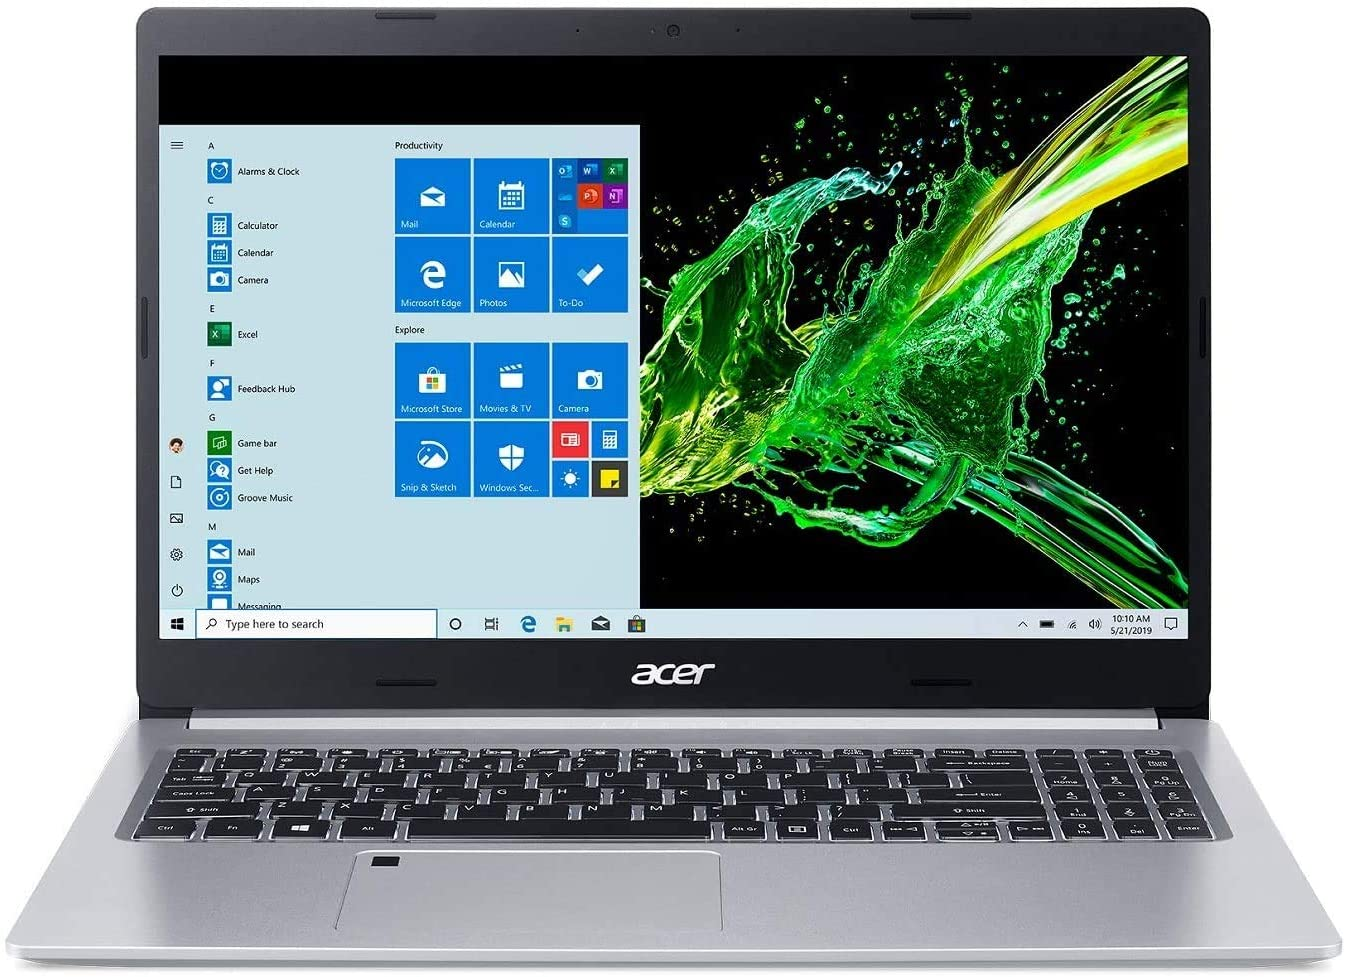 "Acer Aspire 5 15.6"" FHD IPS Laptop Computer 10th Gen Intel Core i5-1035G1 Processor (Up to 3.6GHz) 8GB RAM 128GB SSD WiFi 6, HD Webcam, Fingerprint Reader, Backlit Keyboard, Windows 10 Pro"